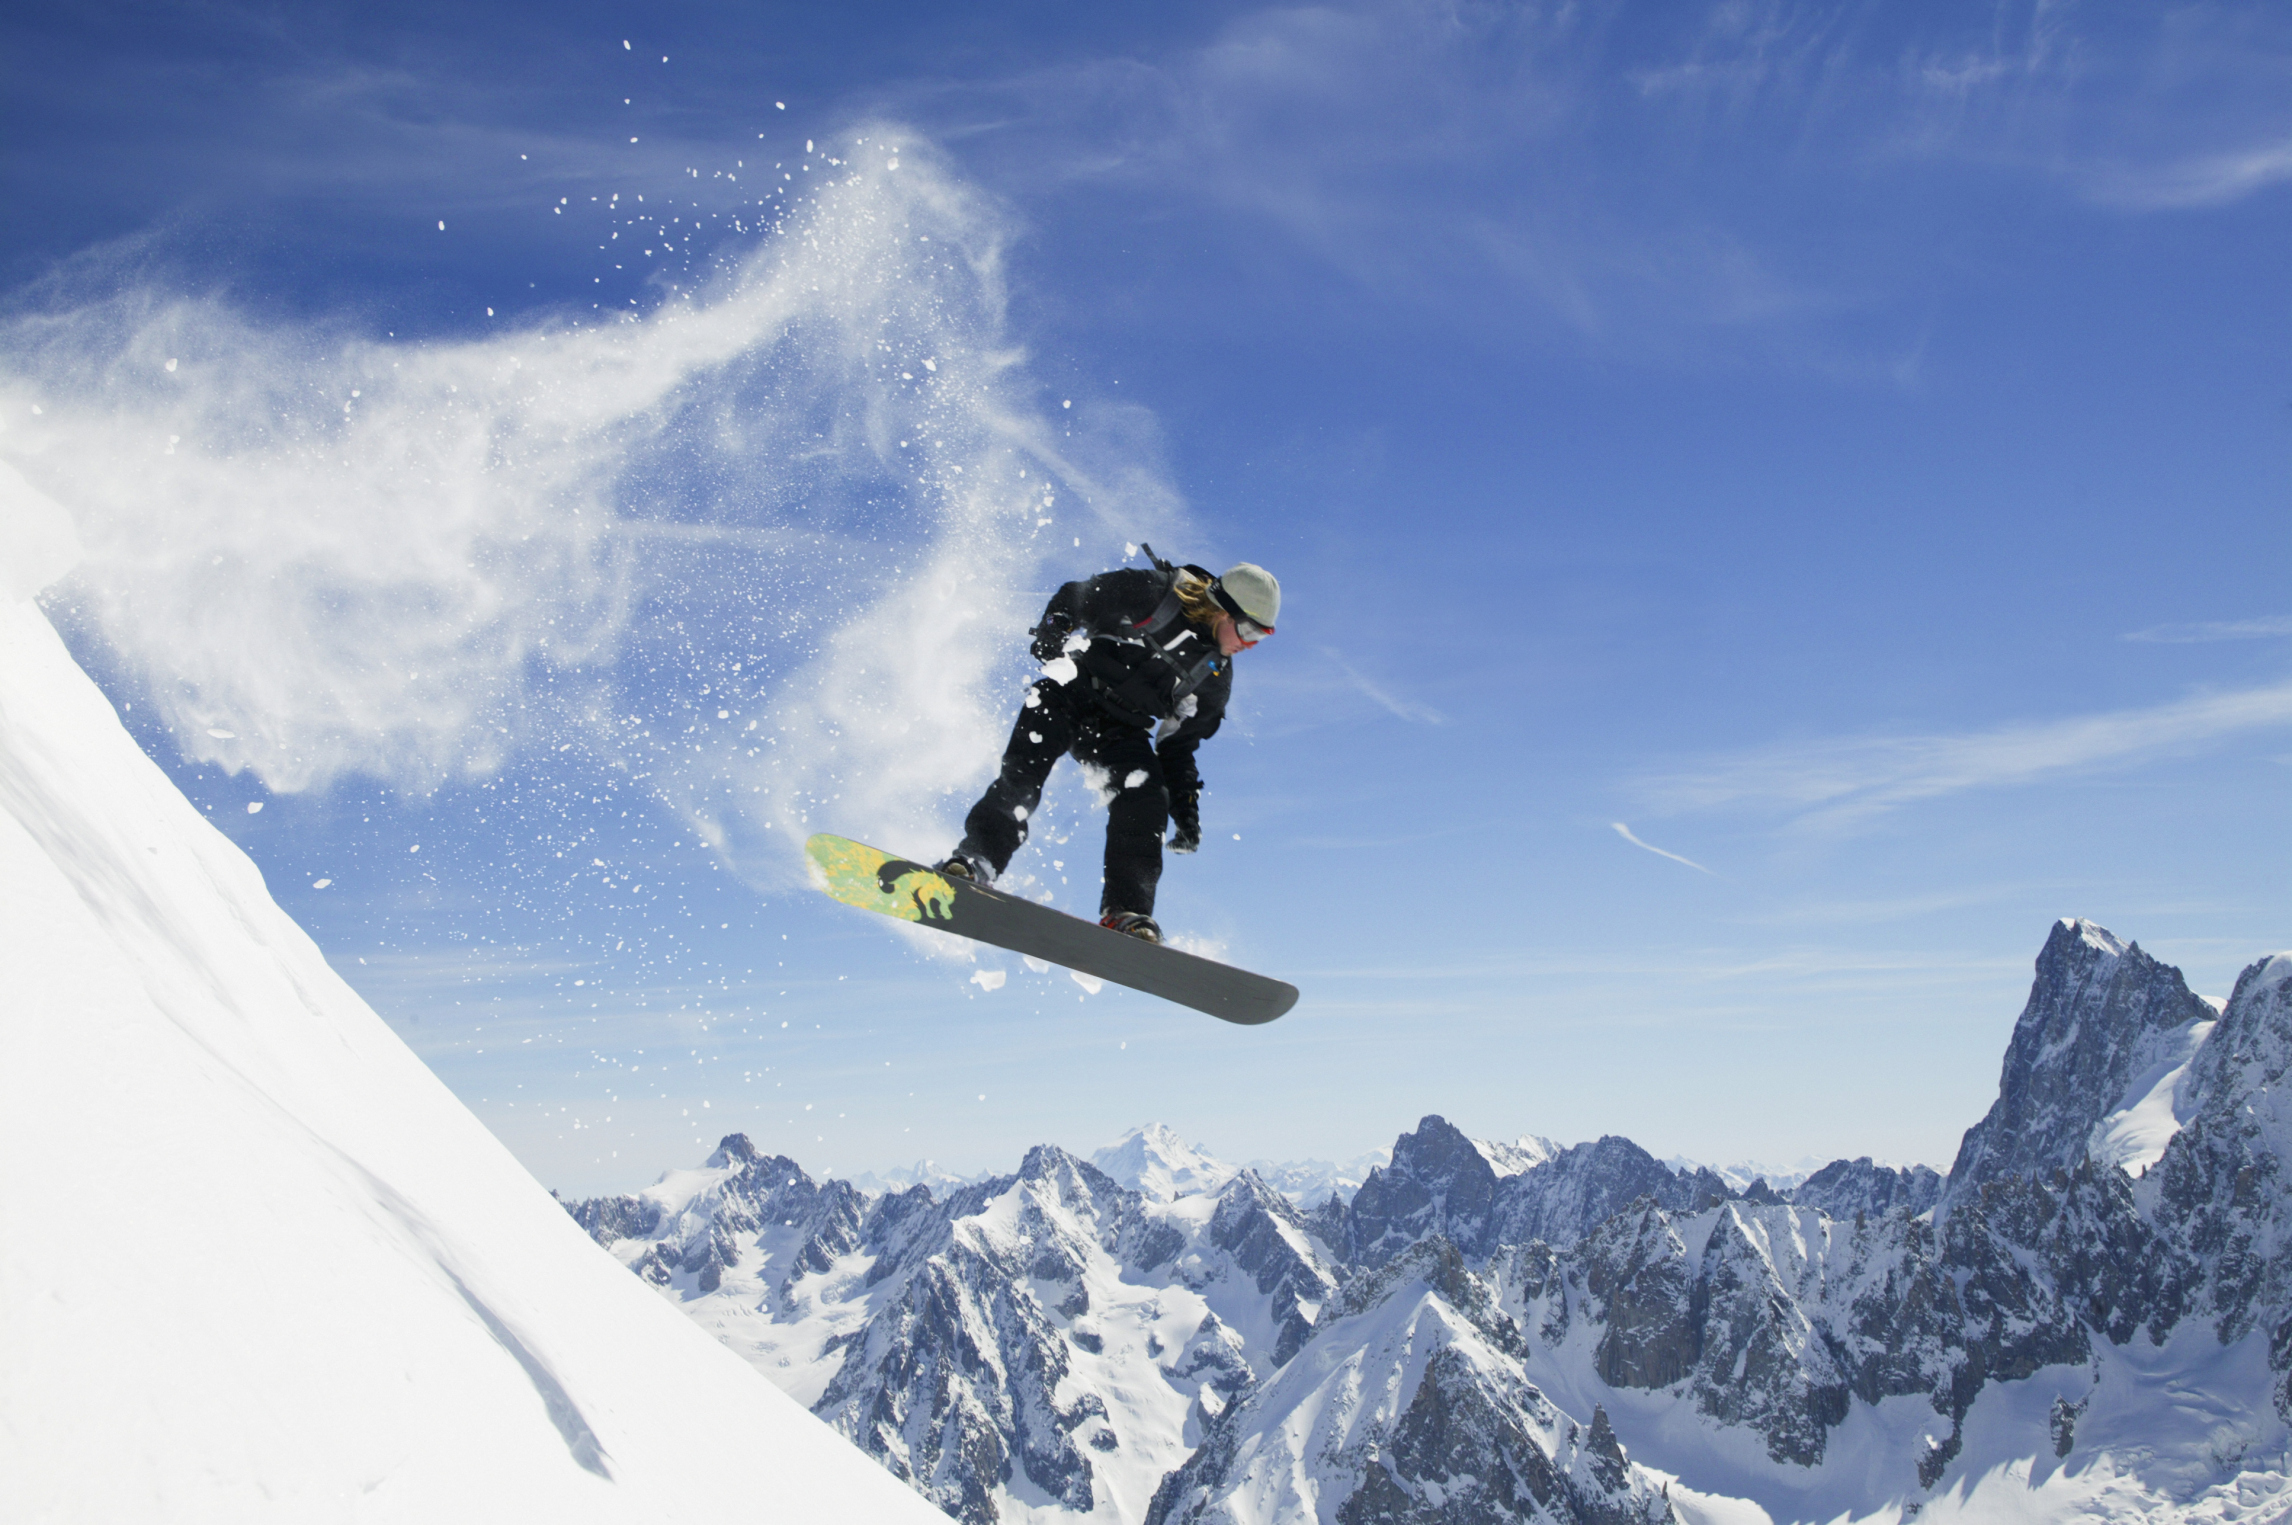 Live Snow Falling Wallpaper For Desktop Calories Burned While Snowboarding Healthfully